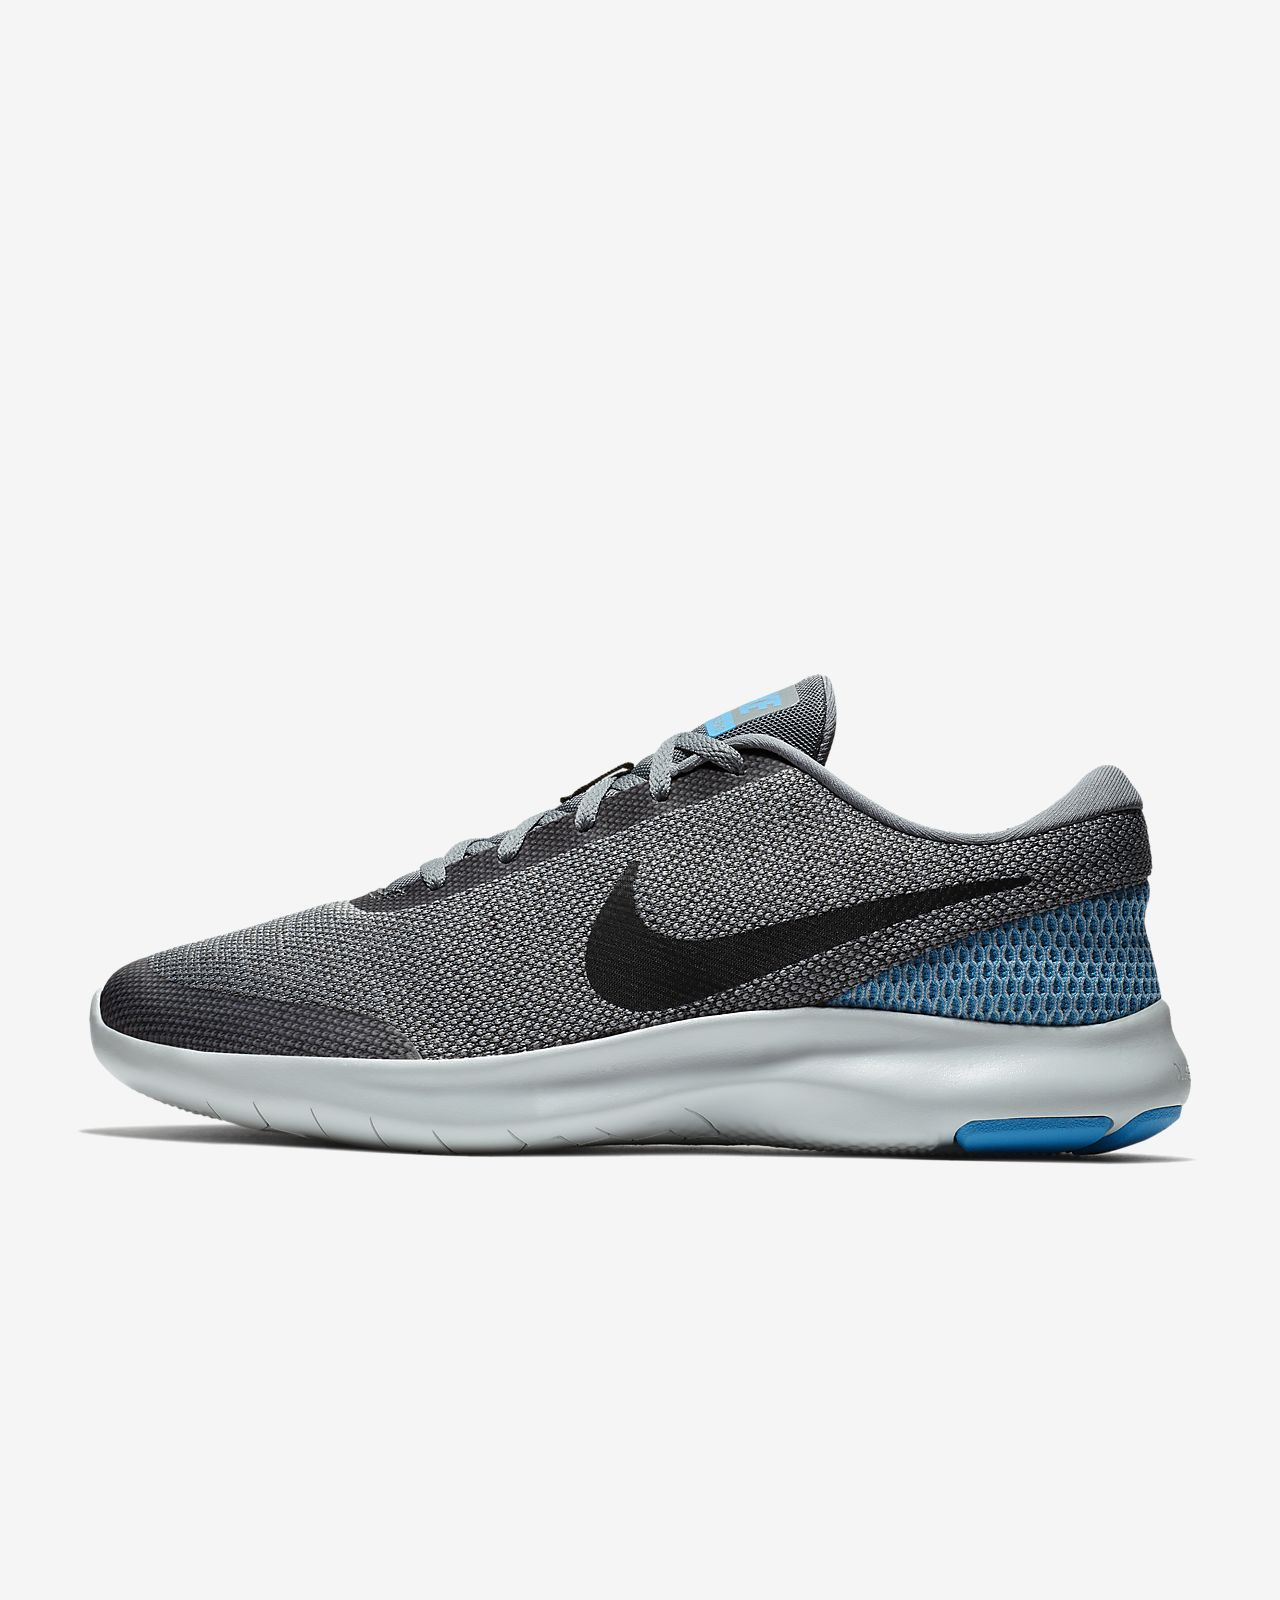 Nike Flex Experience RN 7 Men's Running Shoe